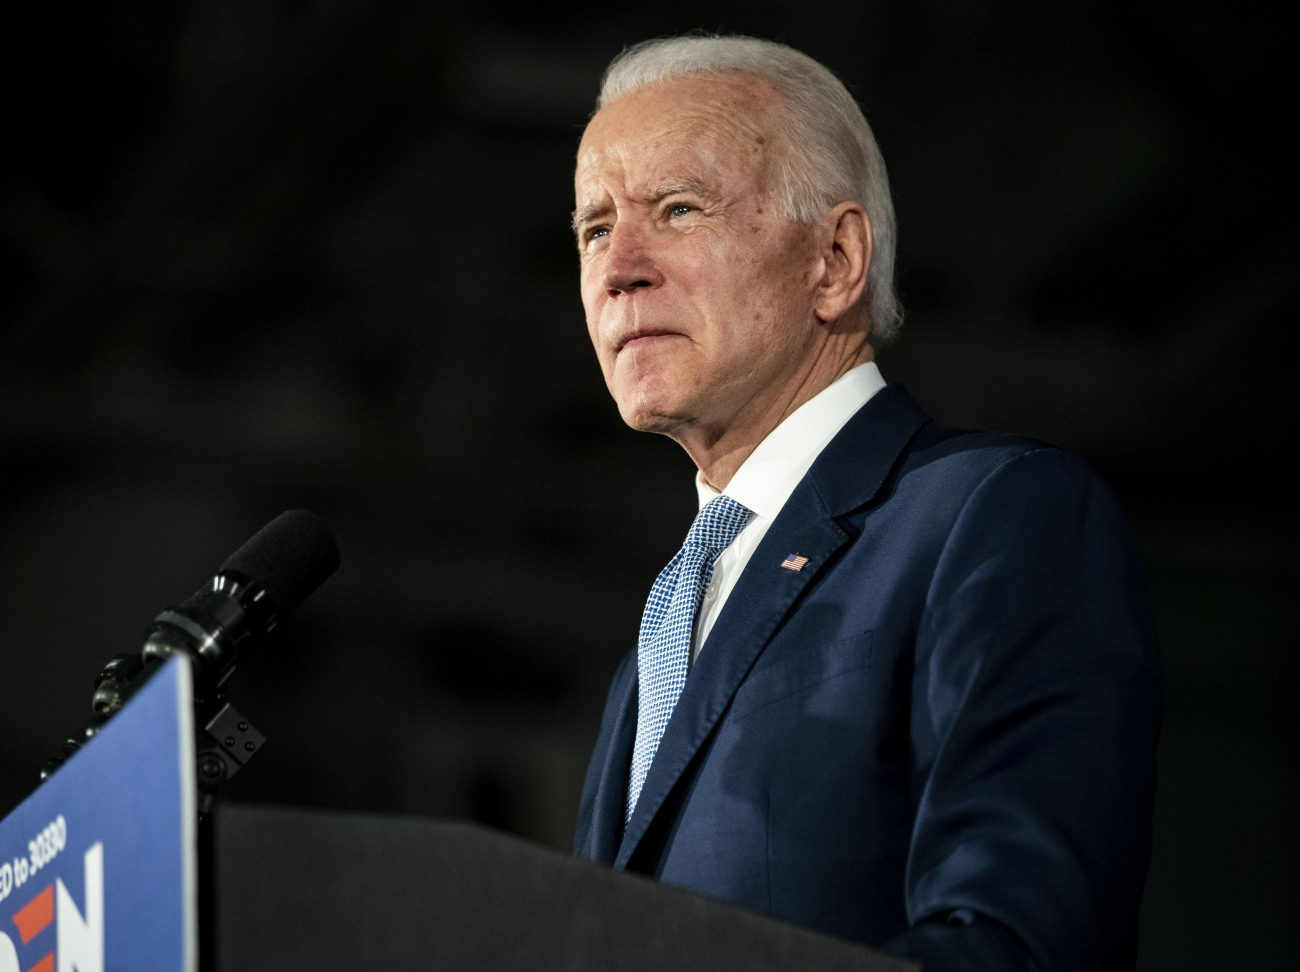 Democratic presidential candidate former Vice President Joe Biden speaks after being declared the winner in the South Carolina Democratic Primary